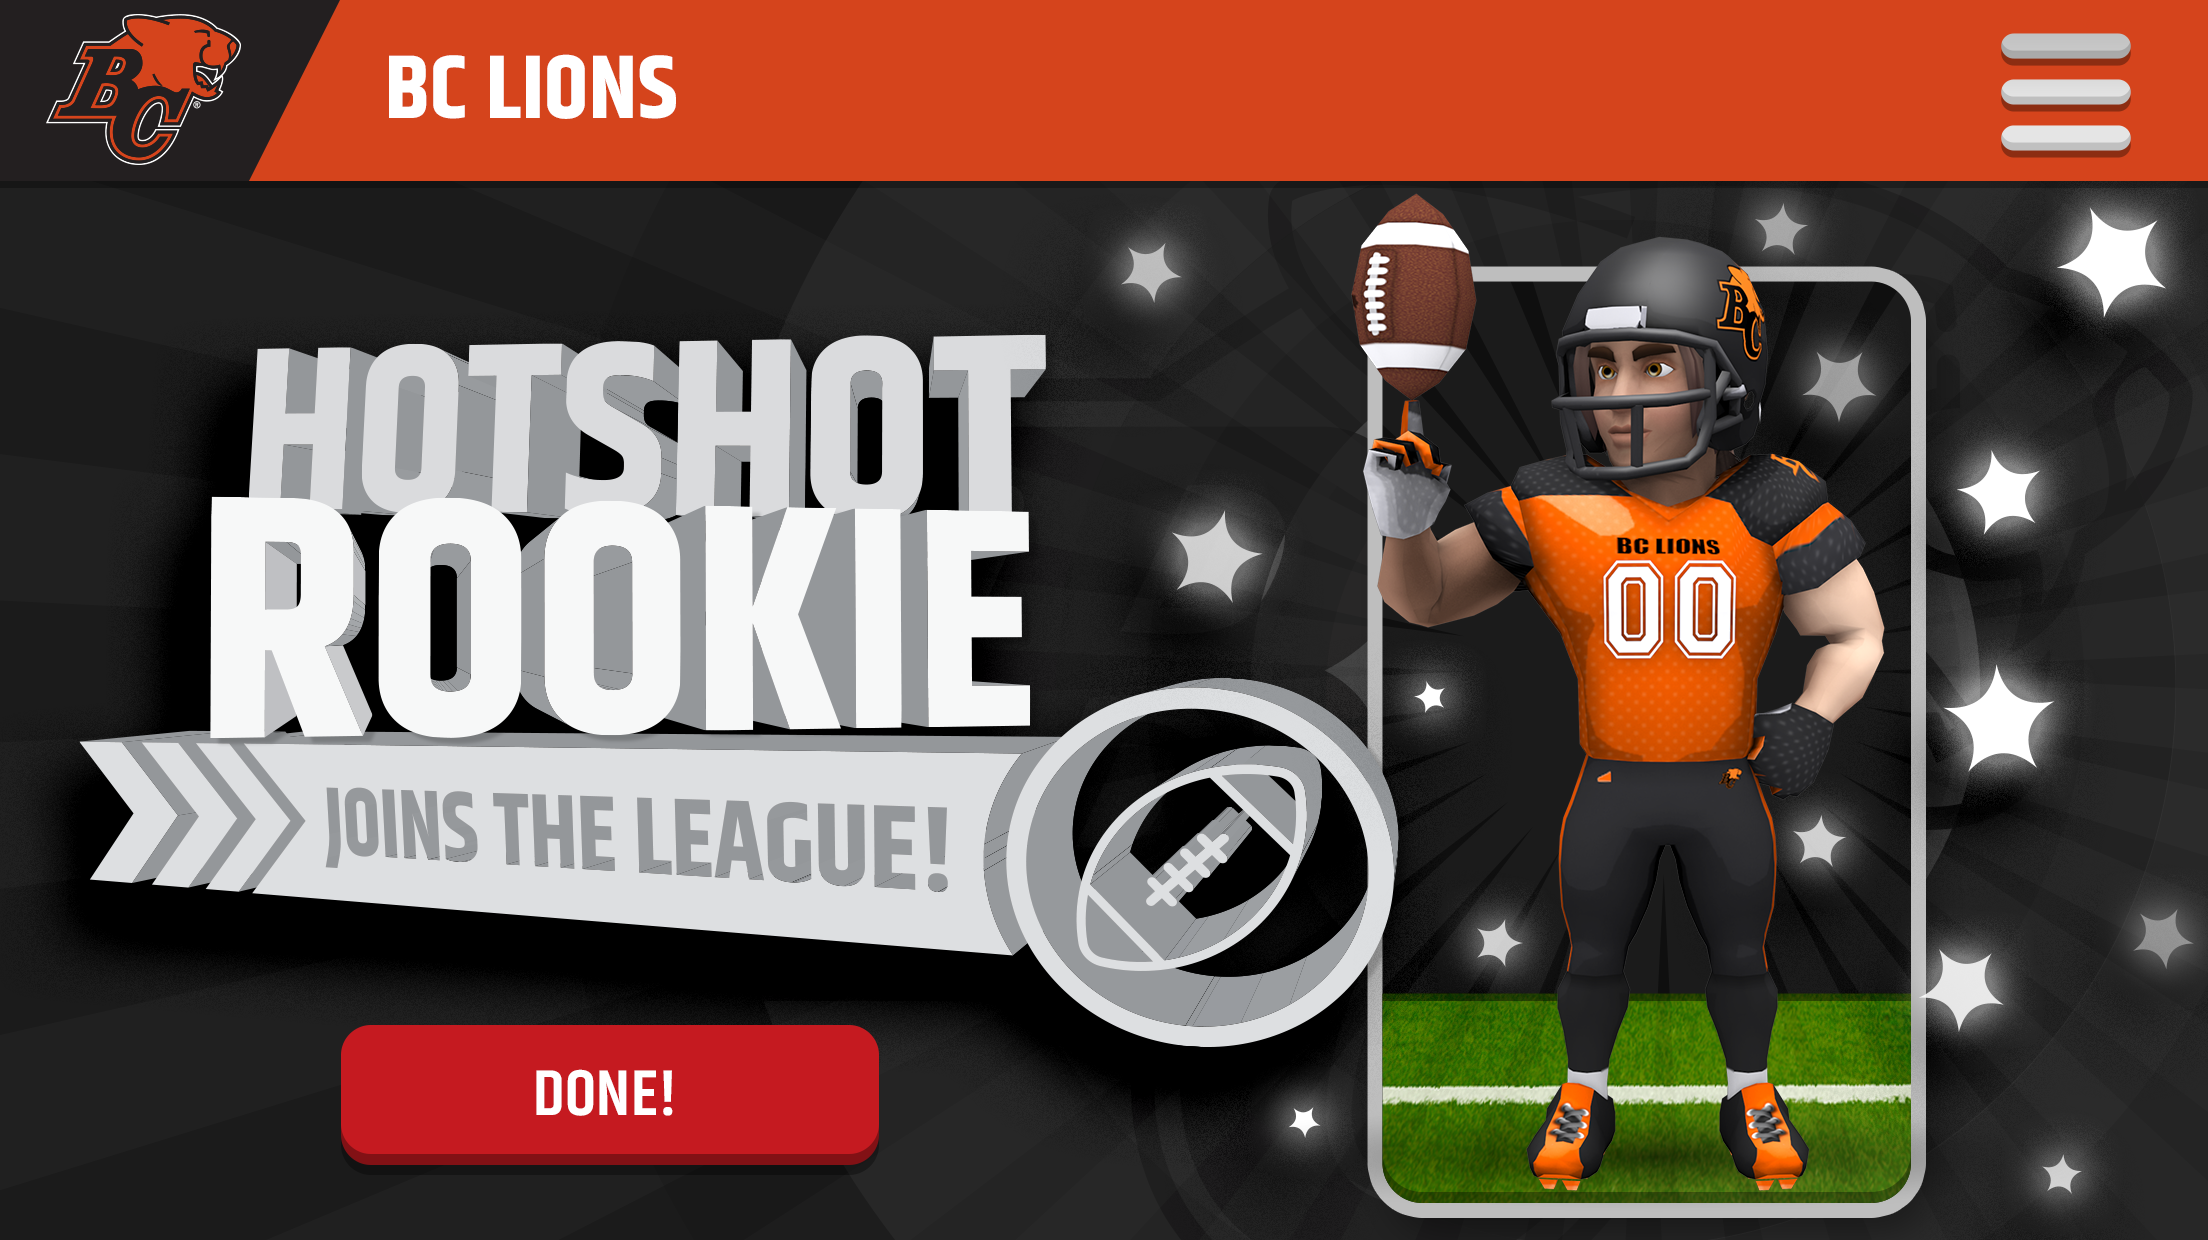 11_Lions_rookie.png